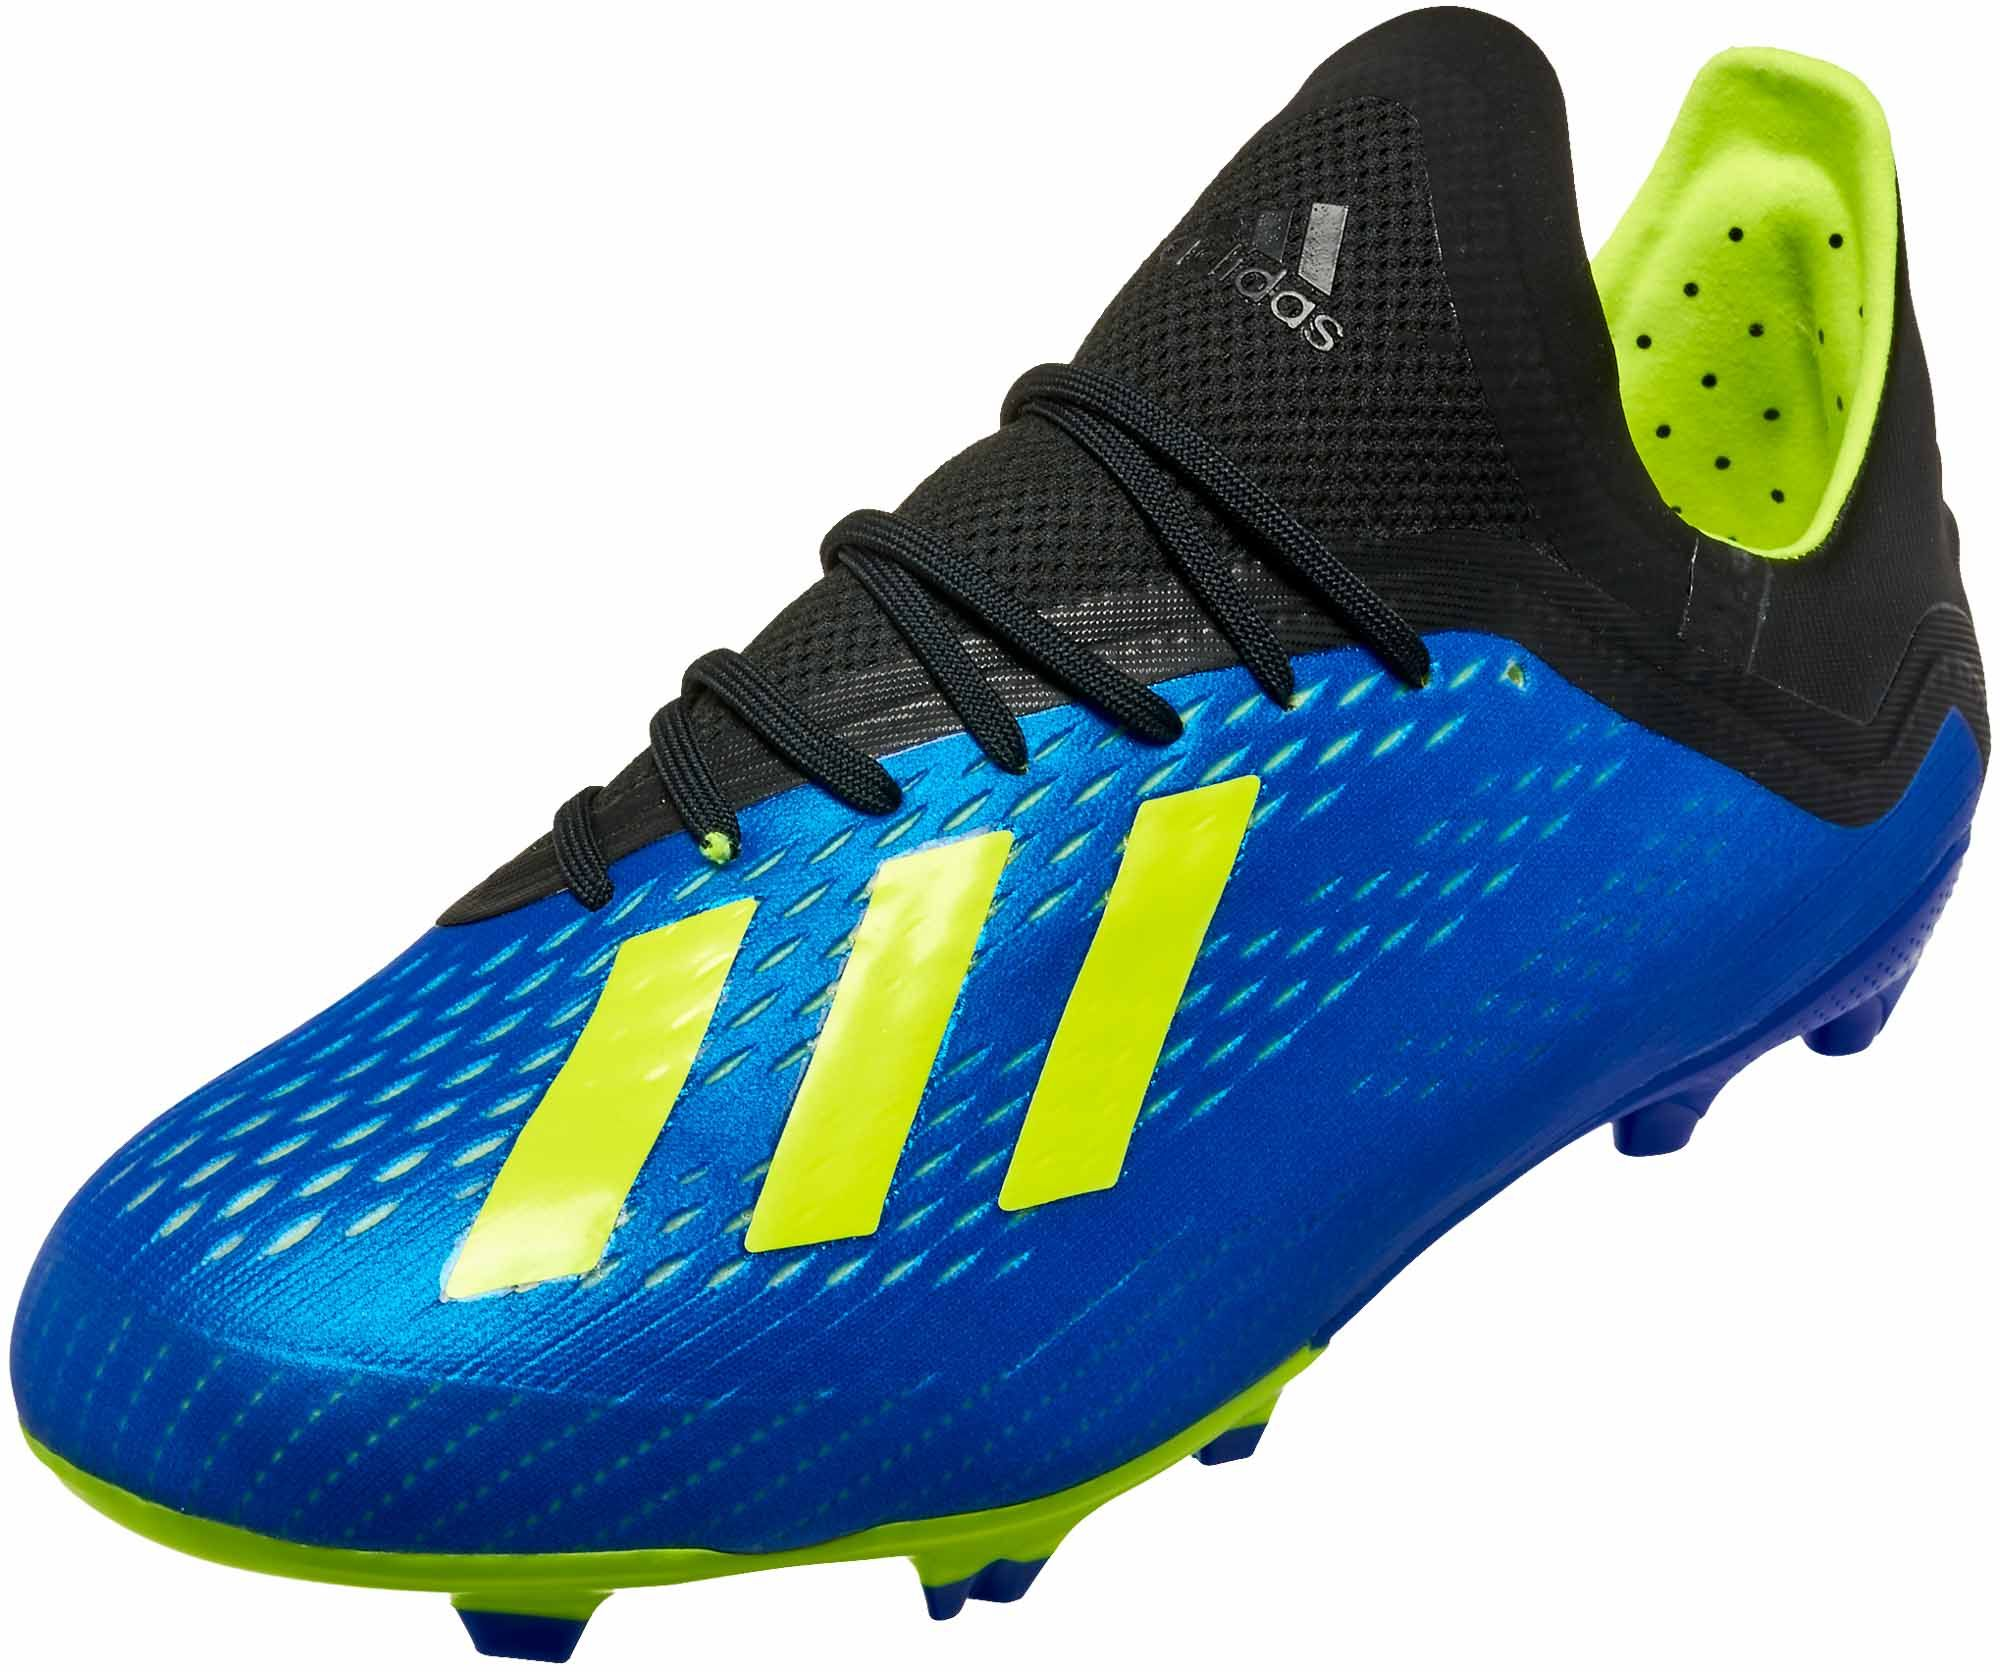 reputable site c19b9 47ec3 Youth adidas X18.1. At SoccerPro.